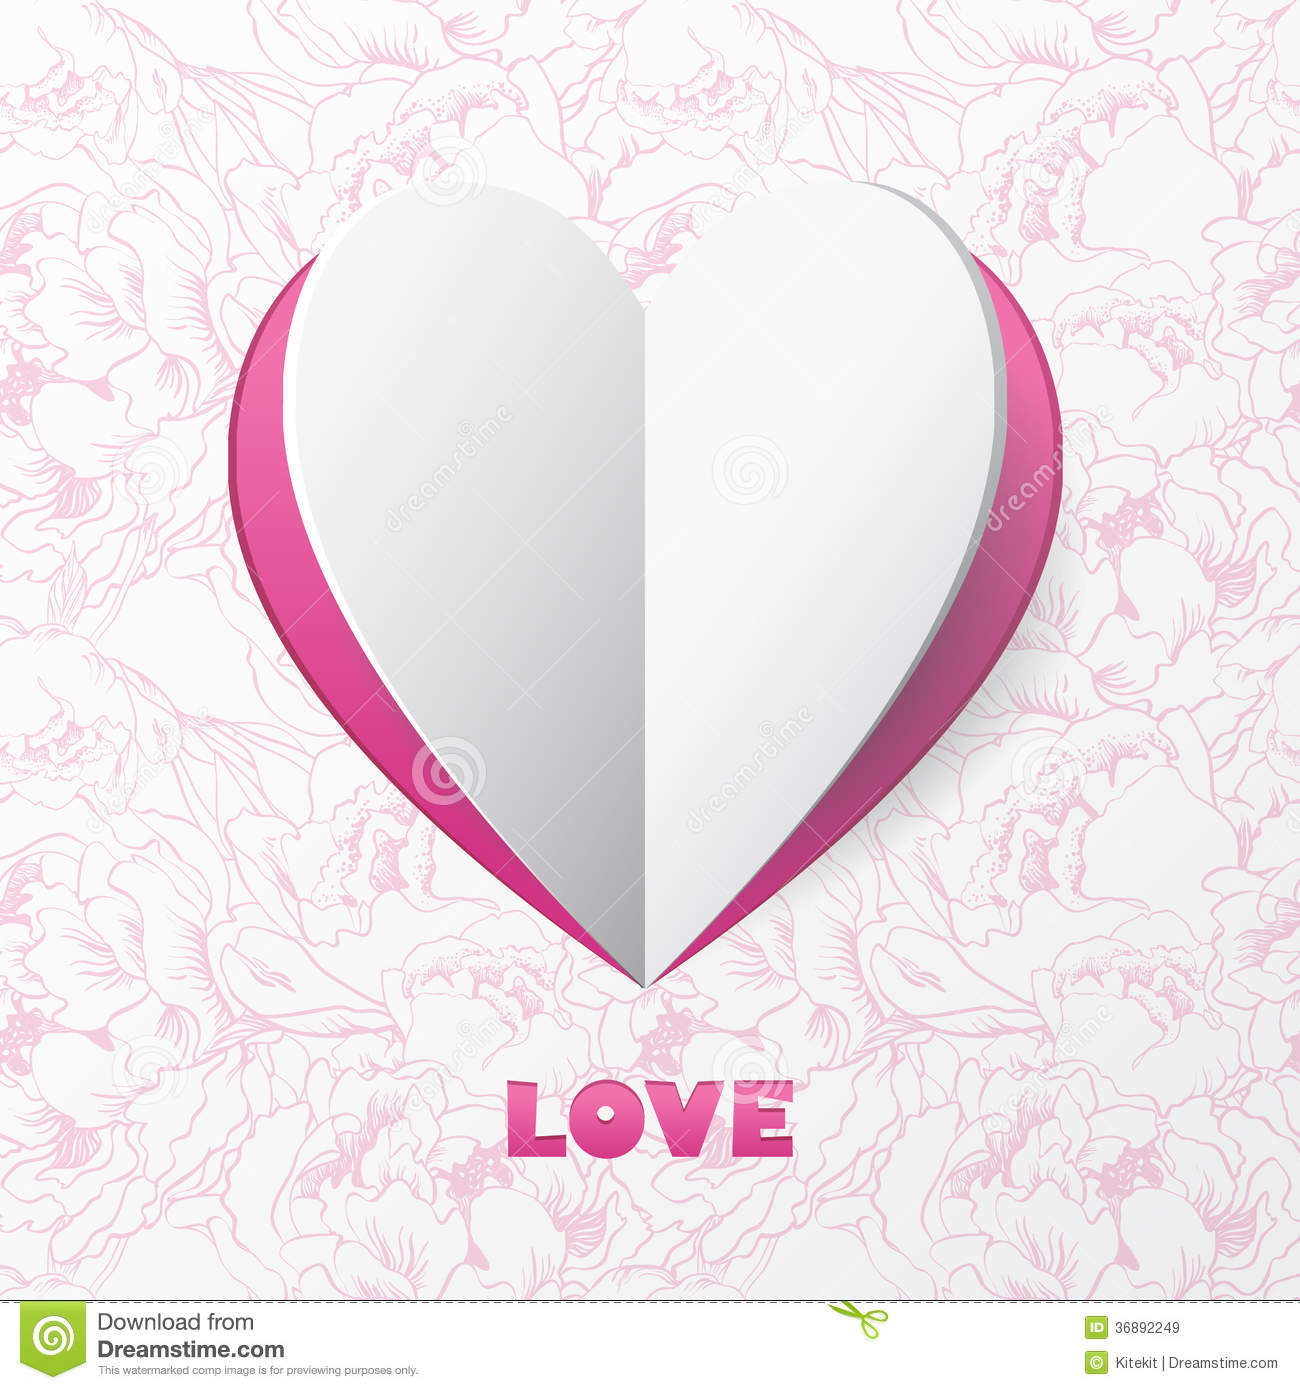 ... Template for design greeting card, wedding invitation, Valentines day